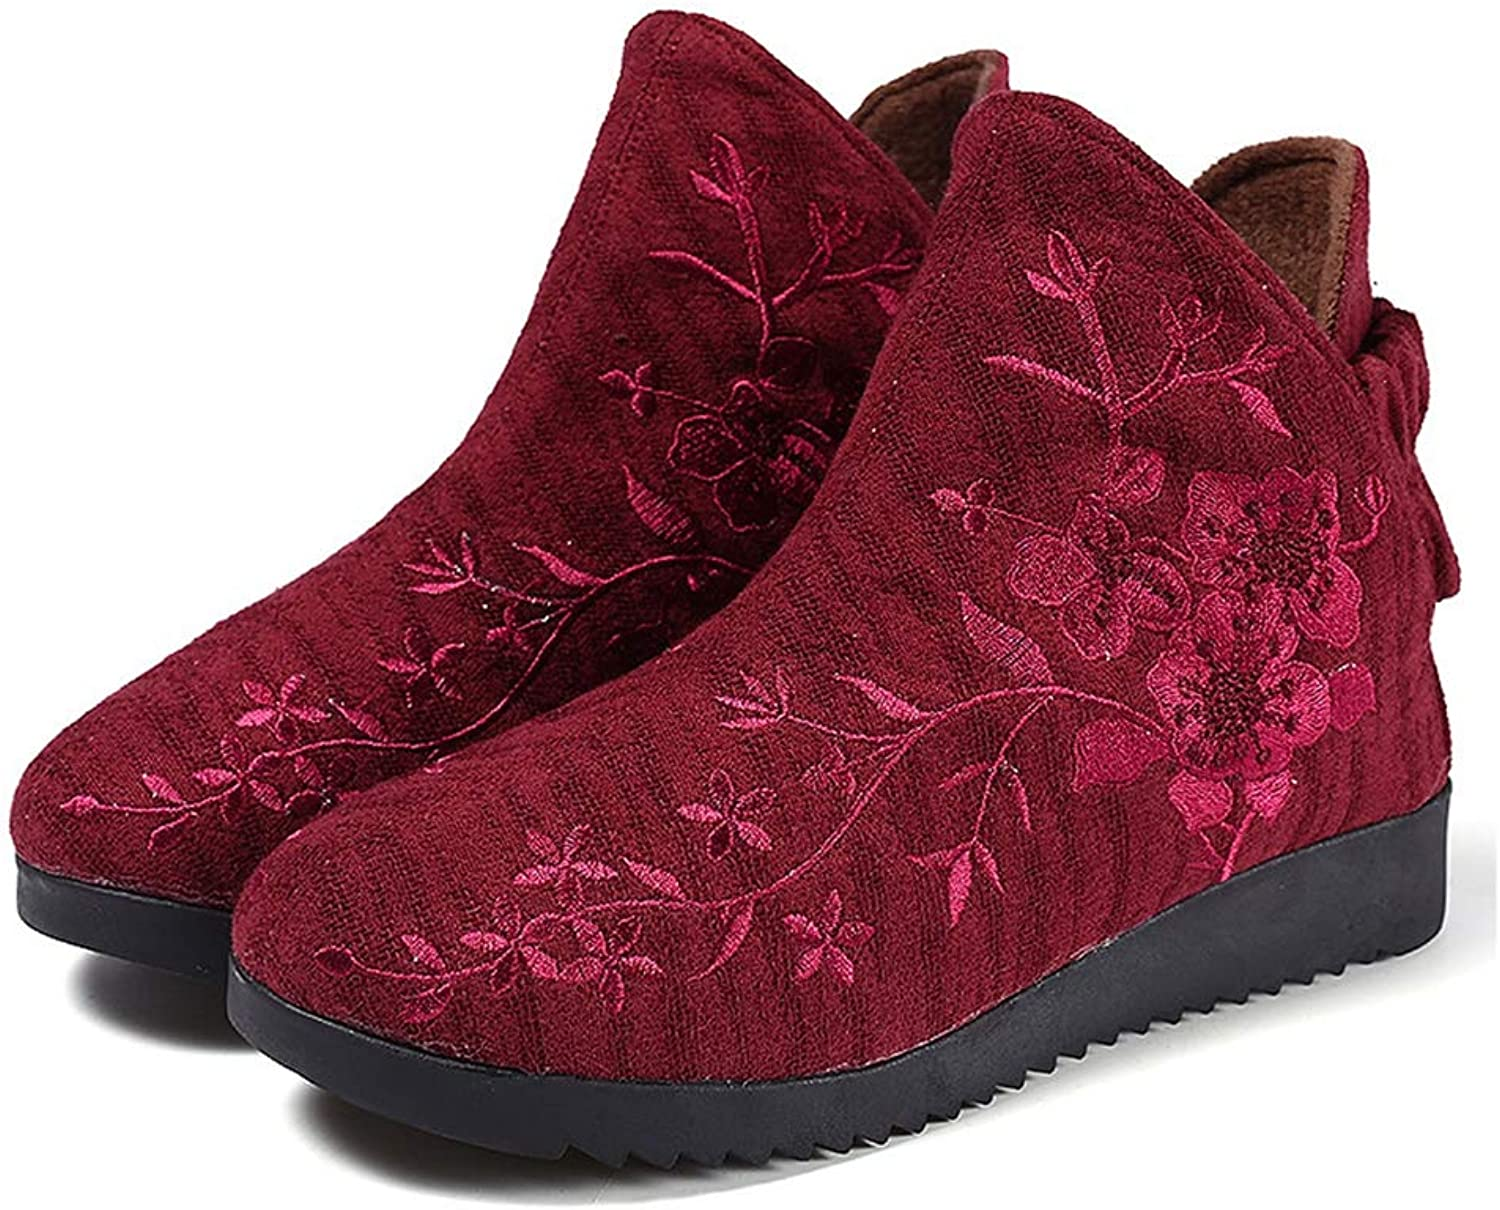 4701cc0509 Walsh Women Ankle Booties Round Toe Flat Heel Embroidery Design ...